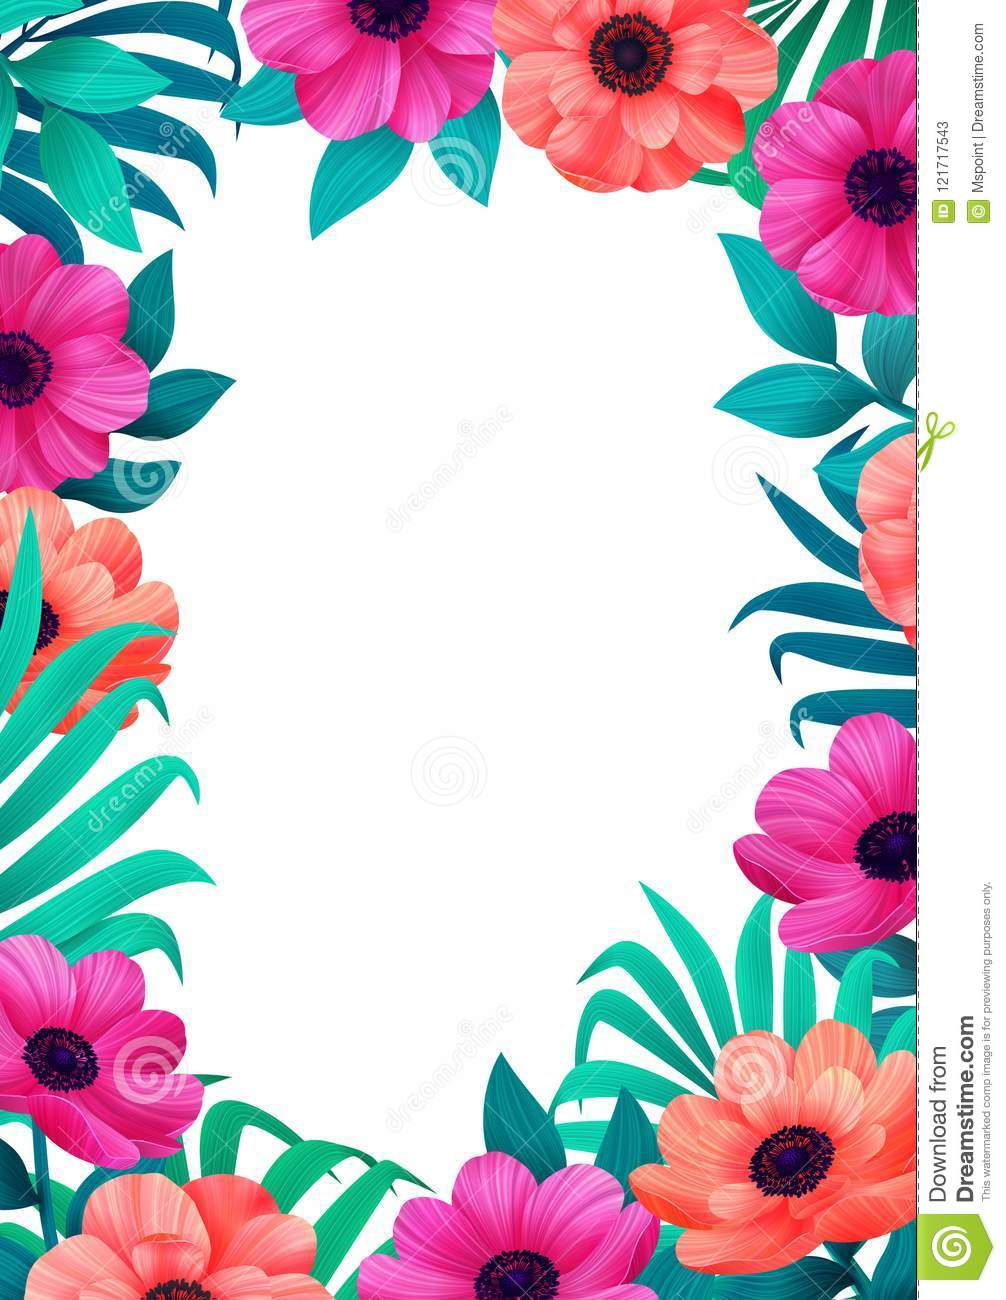 floral frame tropical flowers trendy template vertical design with beautiful flowers and palm leaves